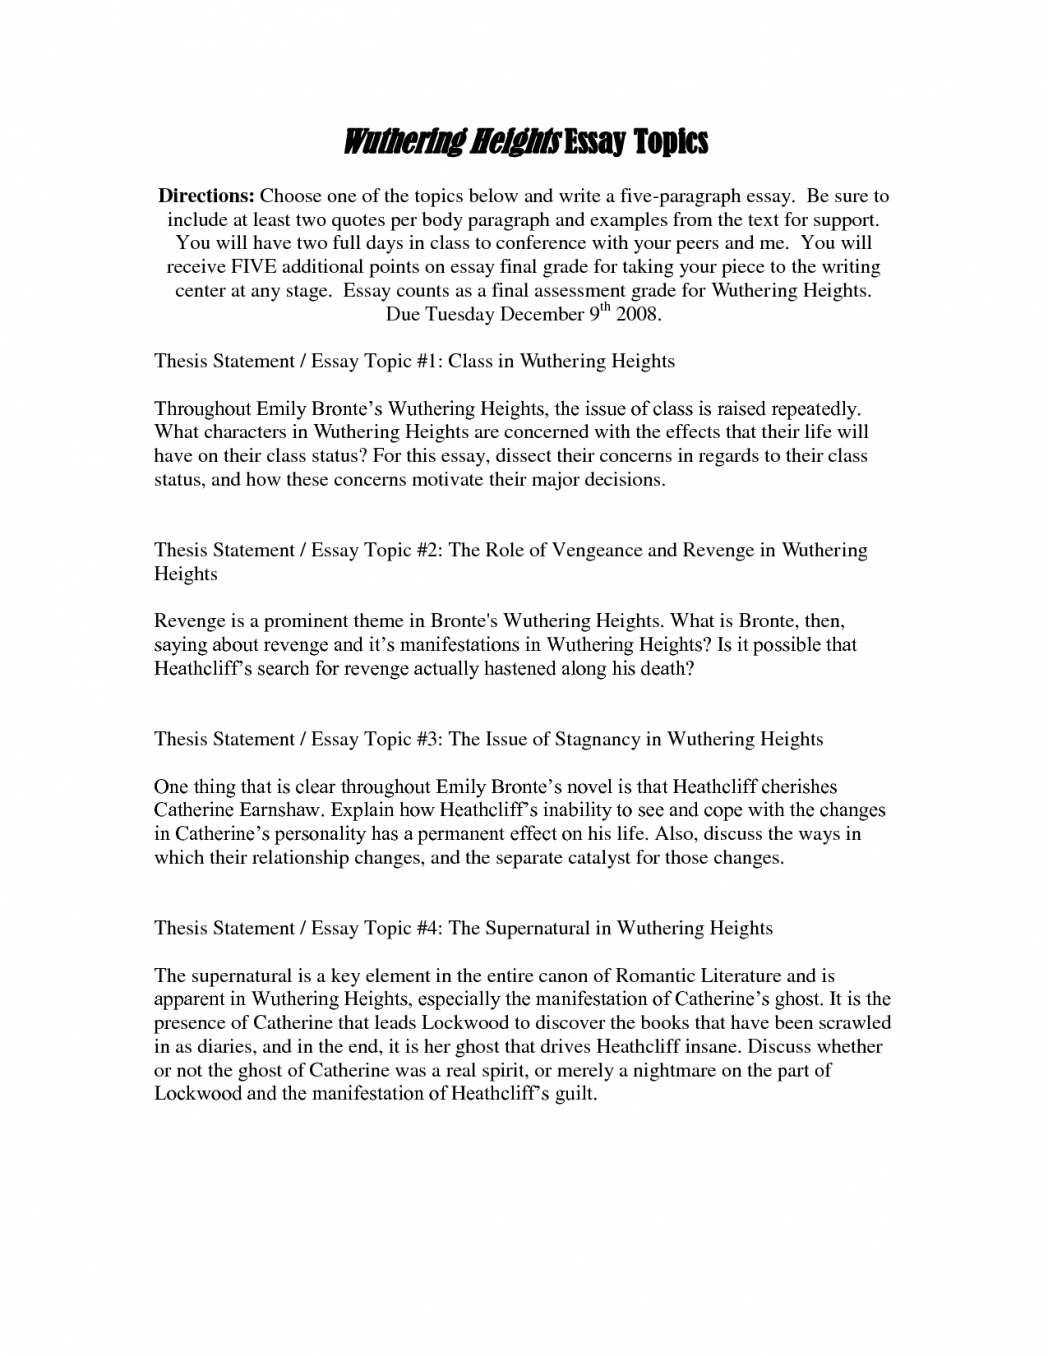 007 Define Thesis Statement In An Essay Wikipedia Step Six From To Writing 8au18 Dbq 1048x1356 Stirring Definition Examples For Argumentative Template Example Full